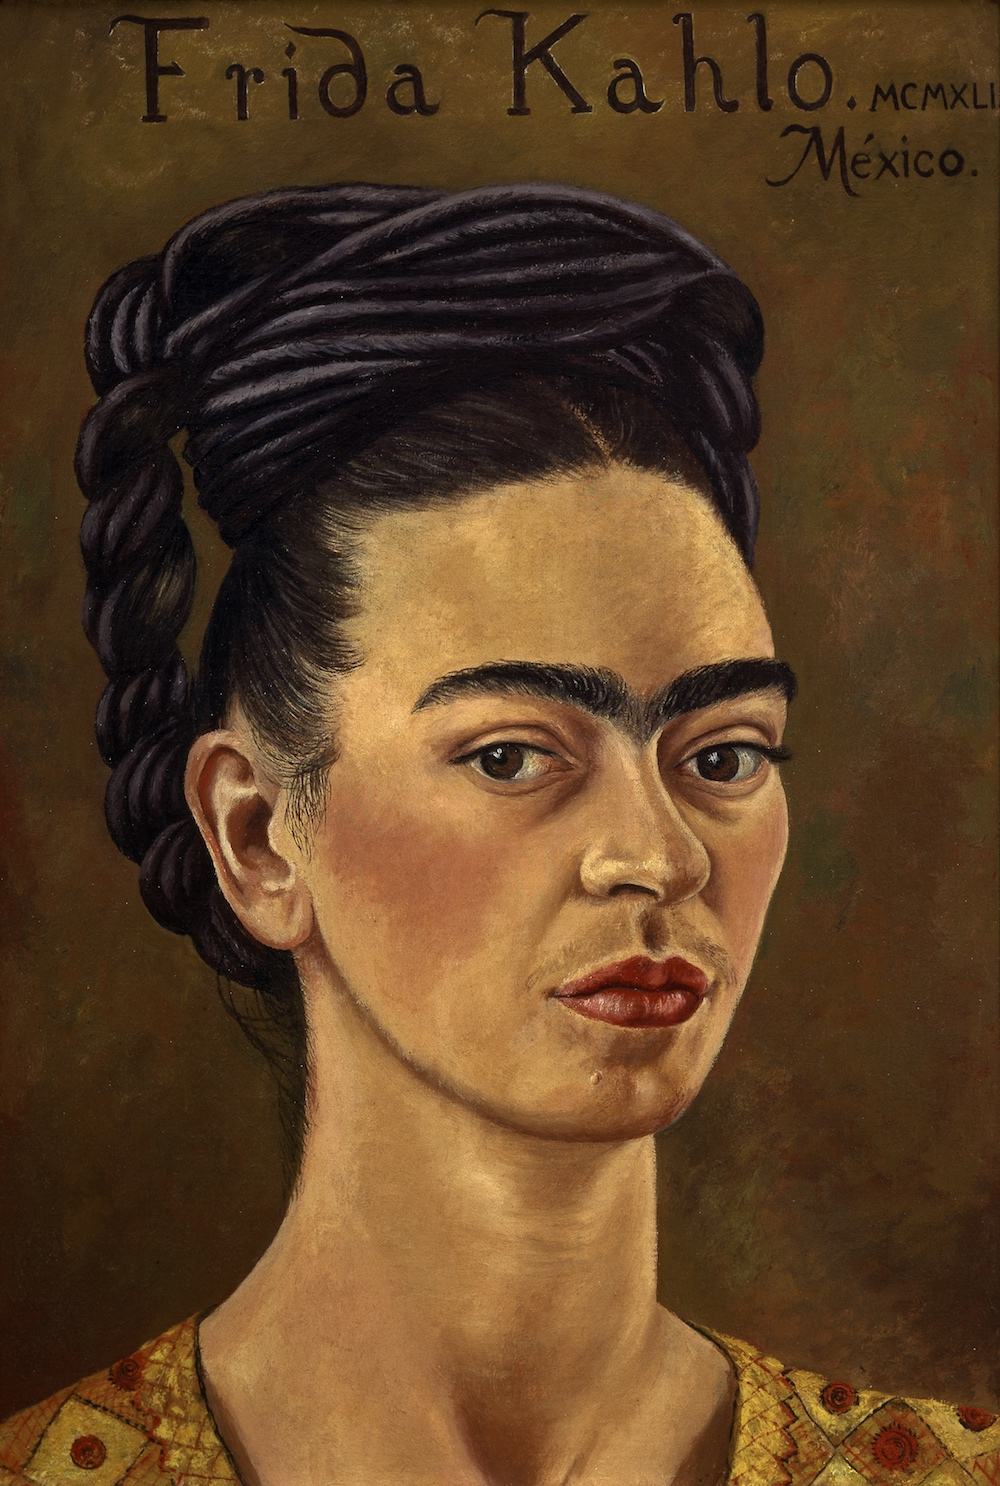 Self-portrait, Frida Kahlo, 1941 © The Jacques and Natasha Gelman Collection of 20th Century Mexican Art and The Vergel Collection